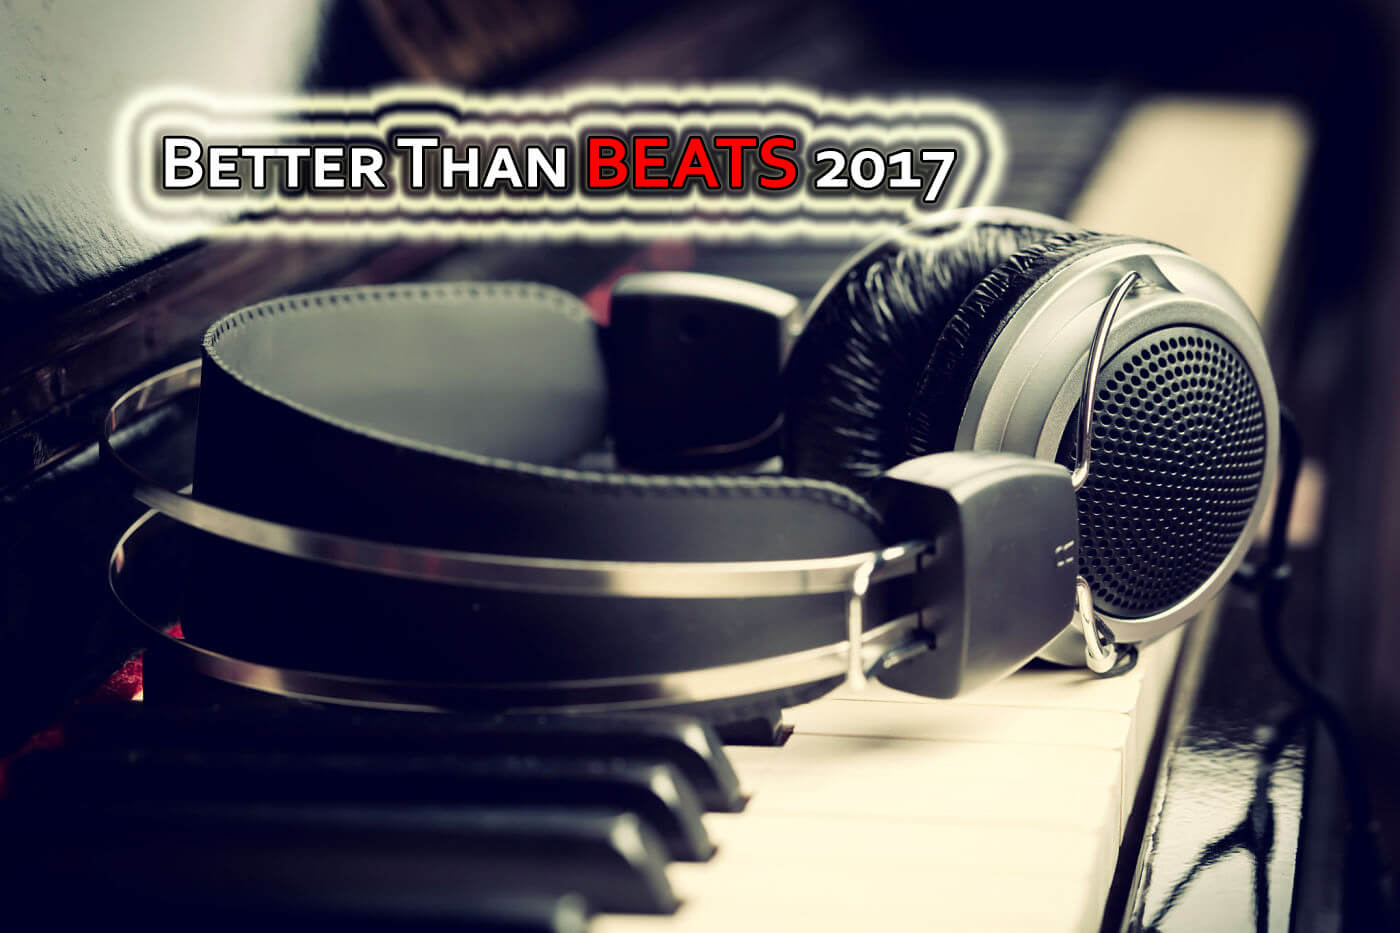 Better than beats 2017